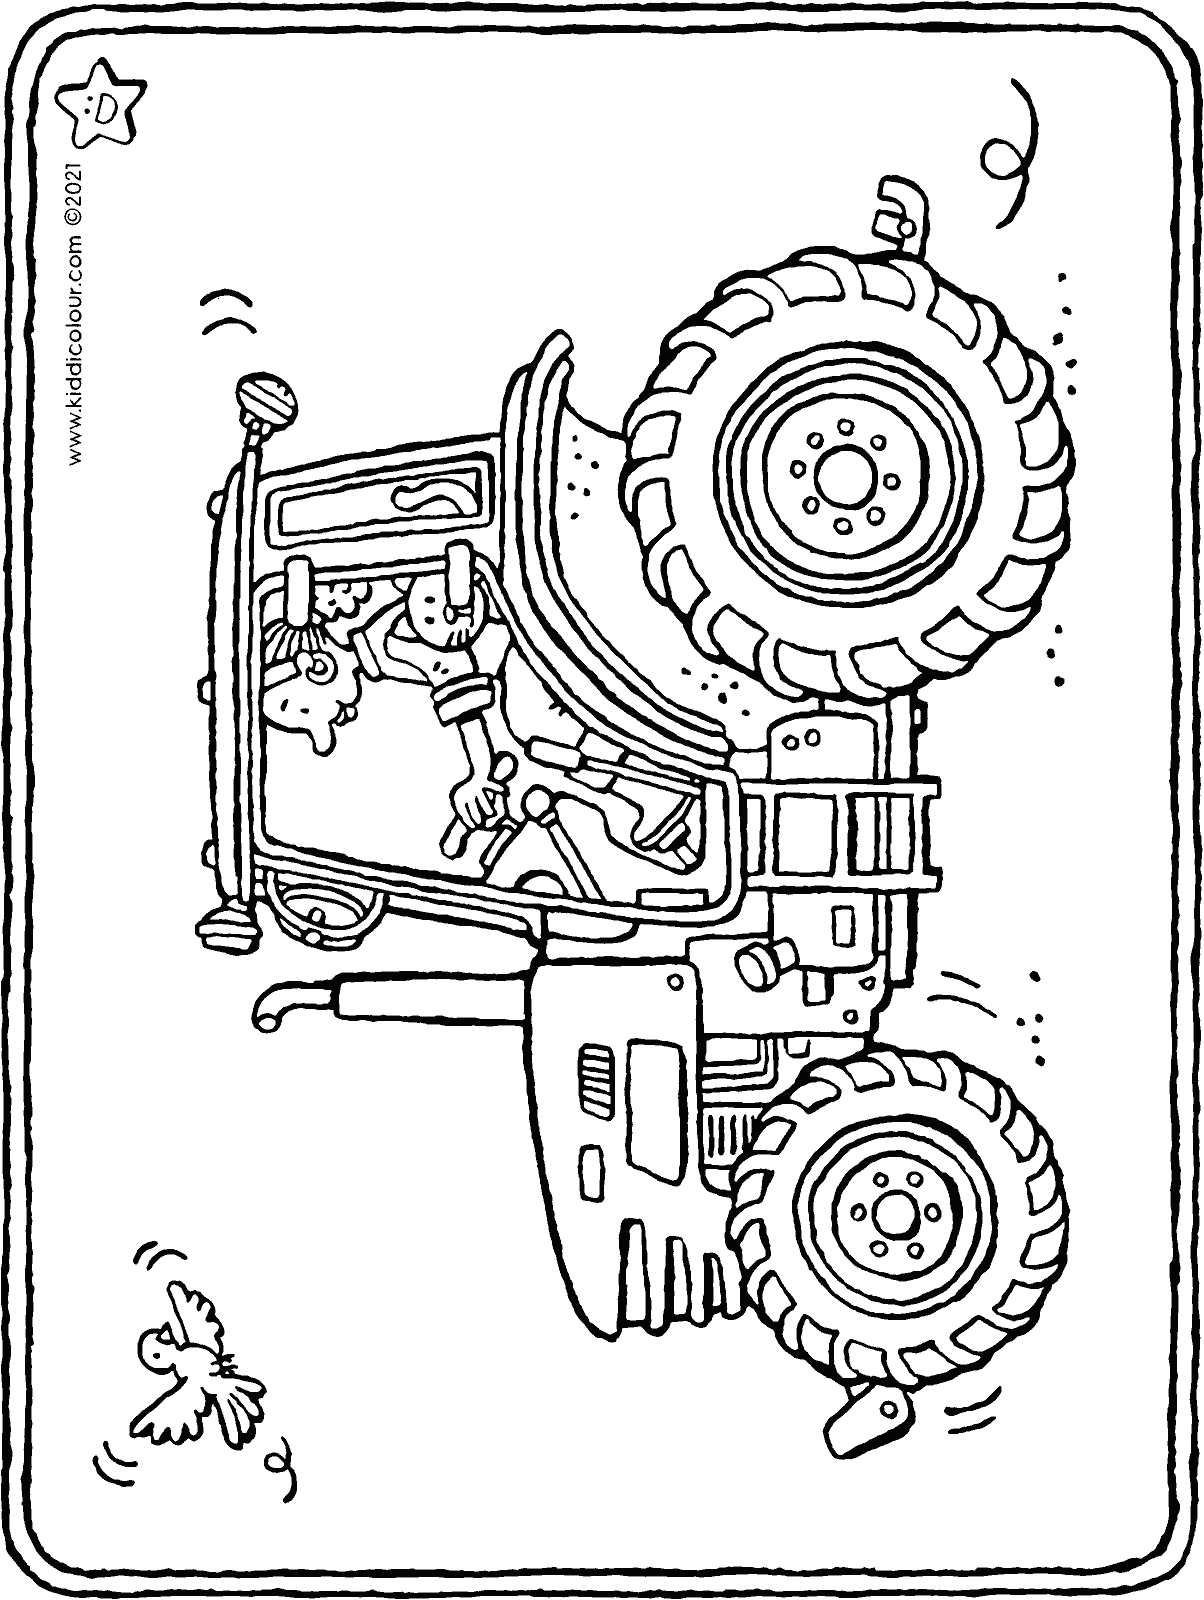 tractor colouring page drawing picture 01H